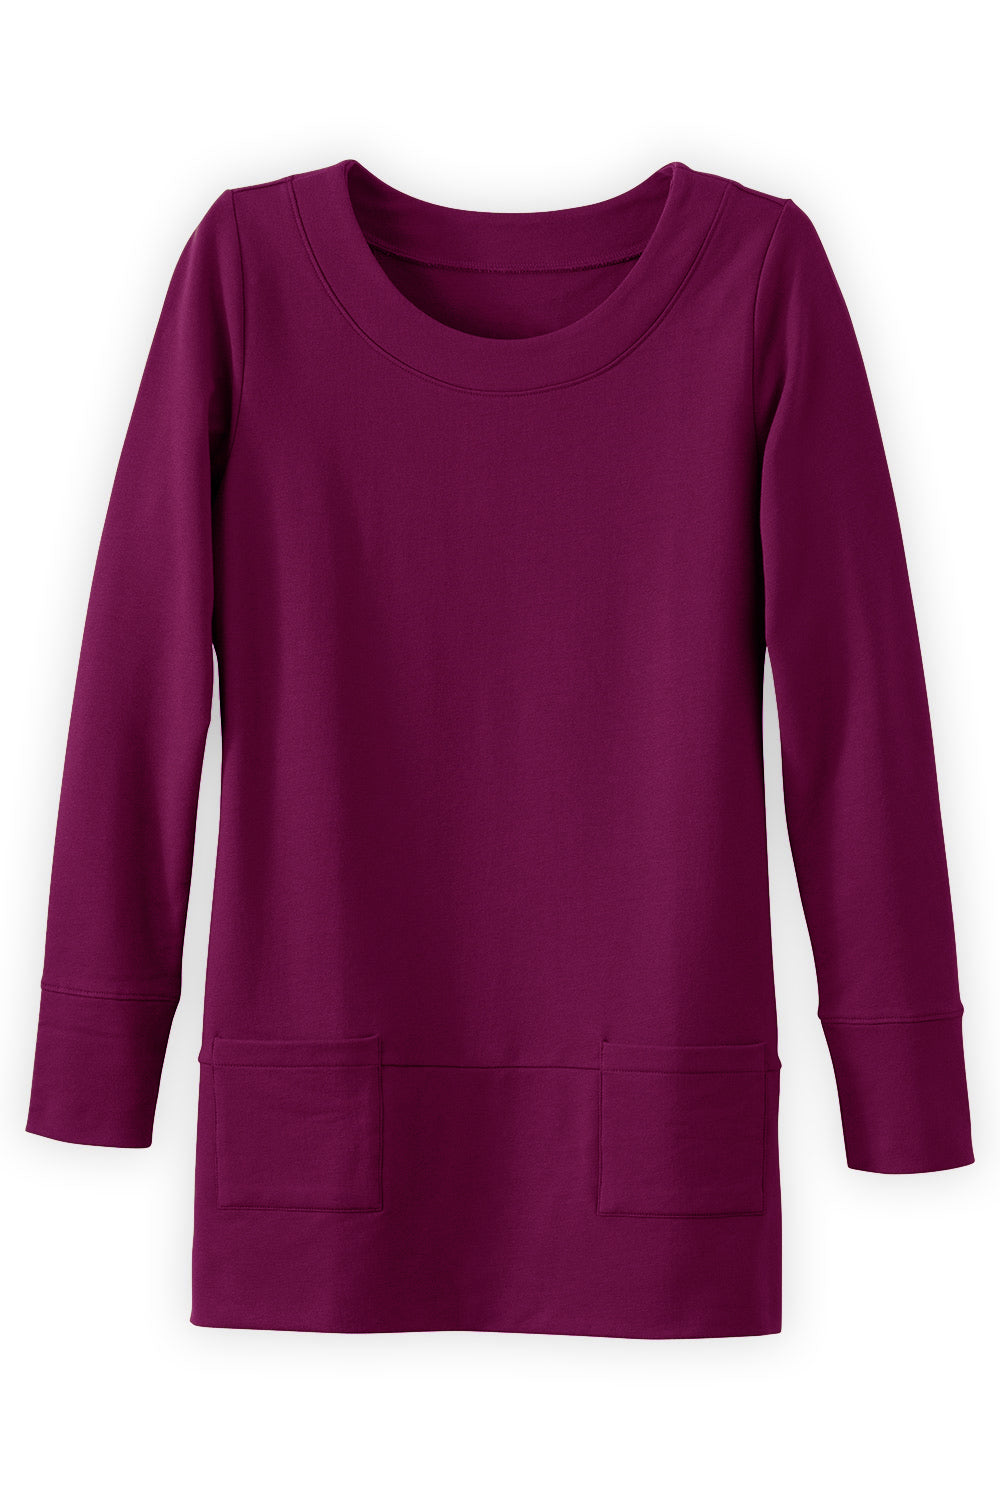 fair-indigo-womens-fair-trade-organic-sweatshirt-tunic